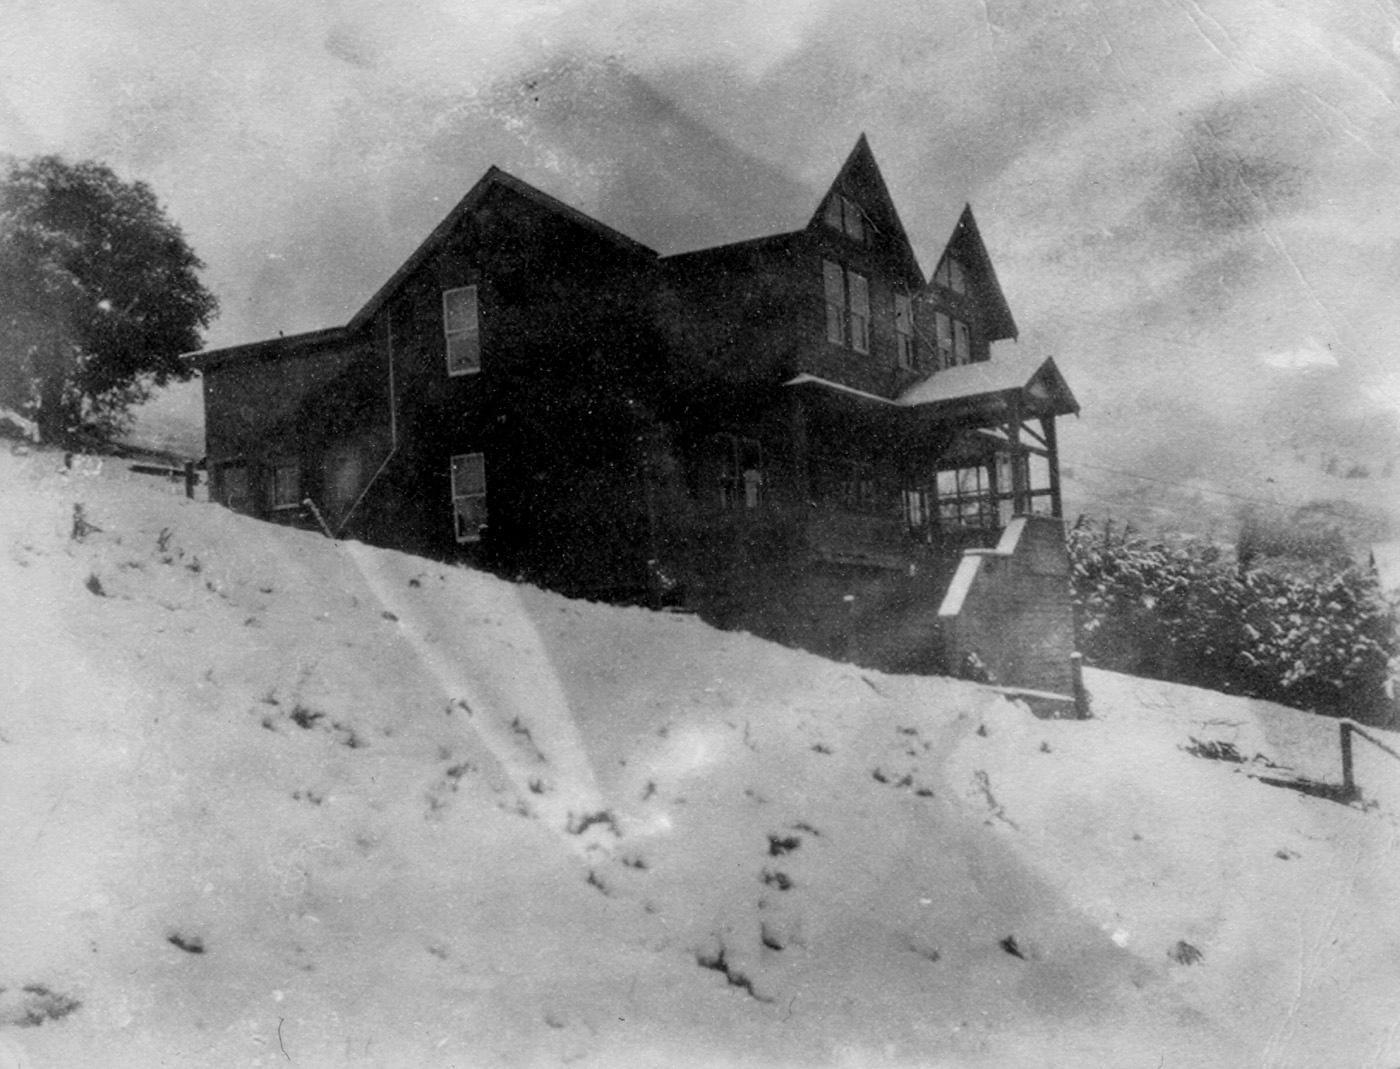 The Ezekiel House, 227 LaVerne, after the January 1922 snowstorm